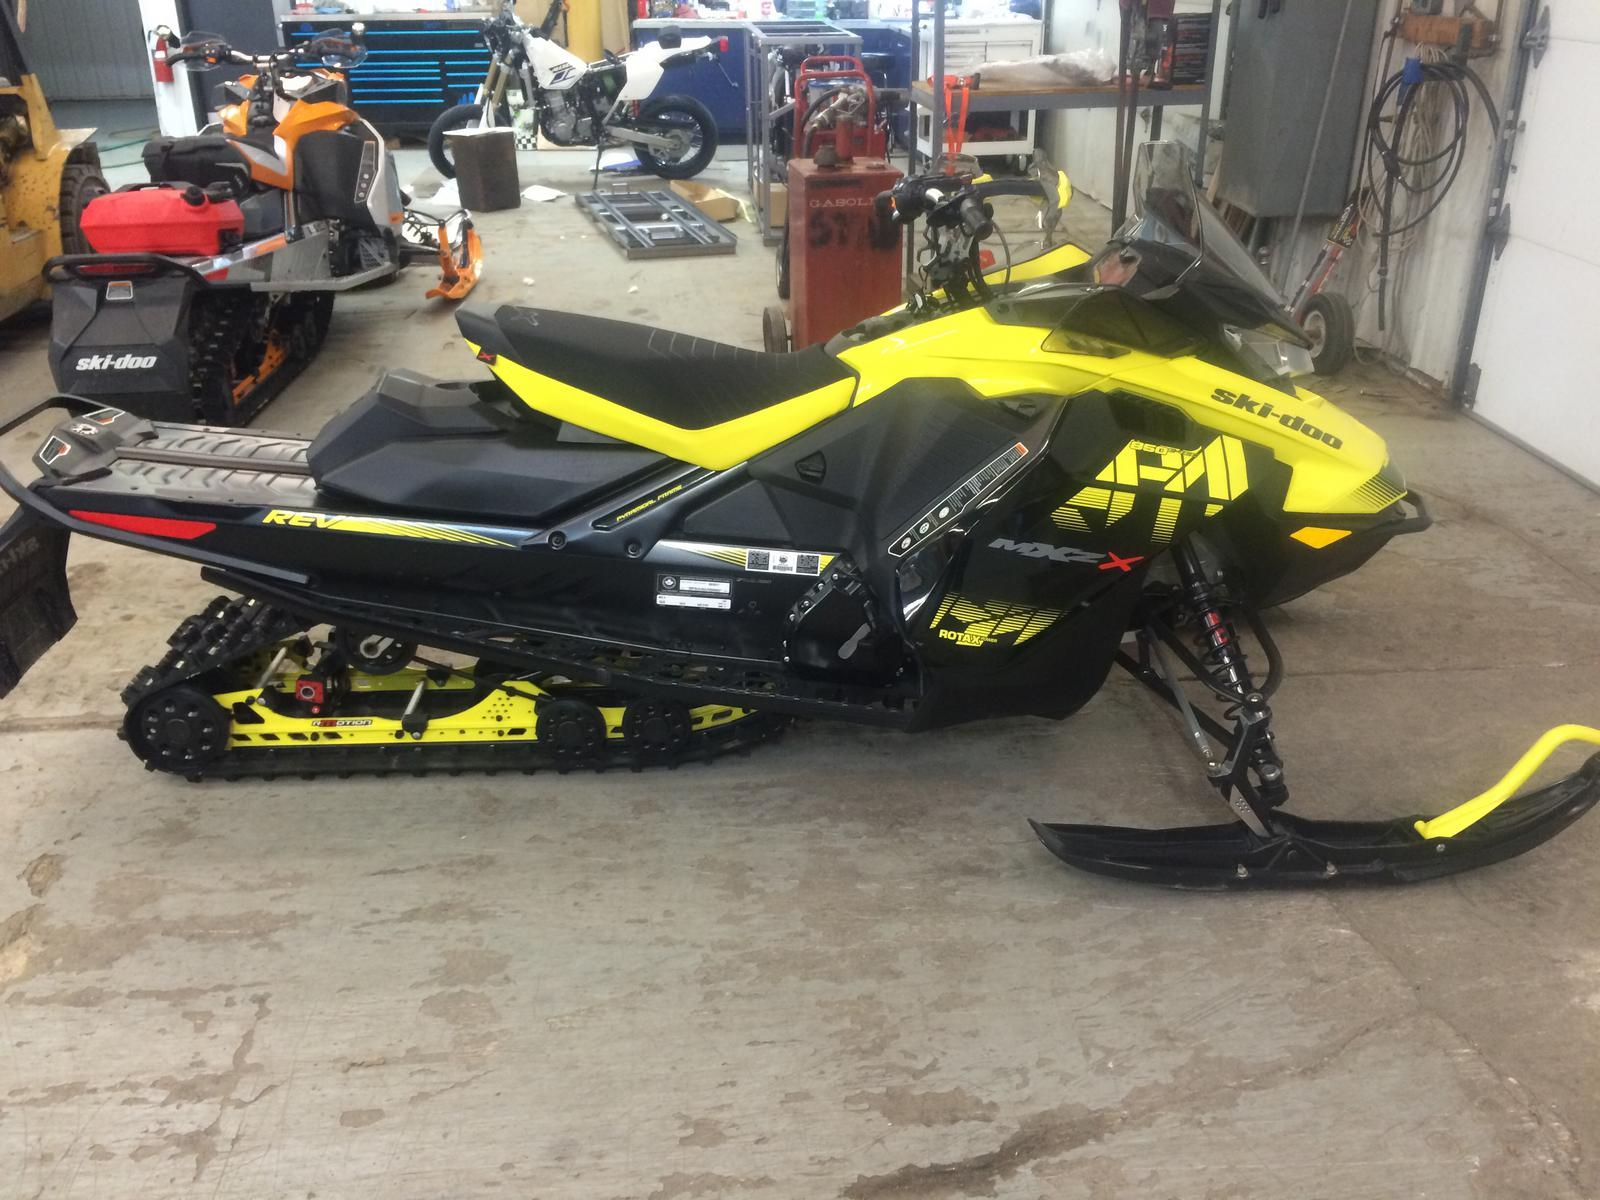 2011 Arctic Cat Crossfire 8 Sno Pro Powersports Snowmobile Water Crafts